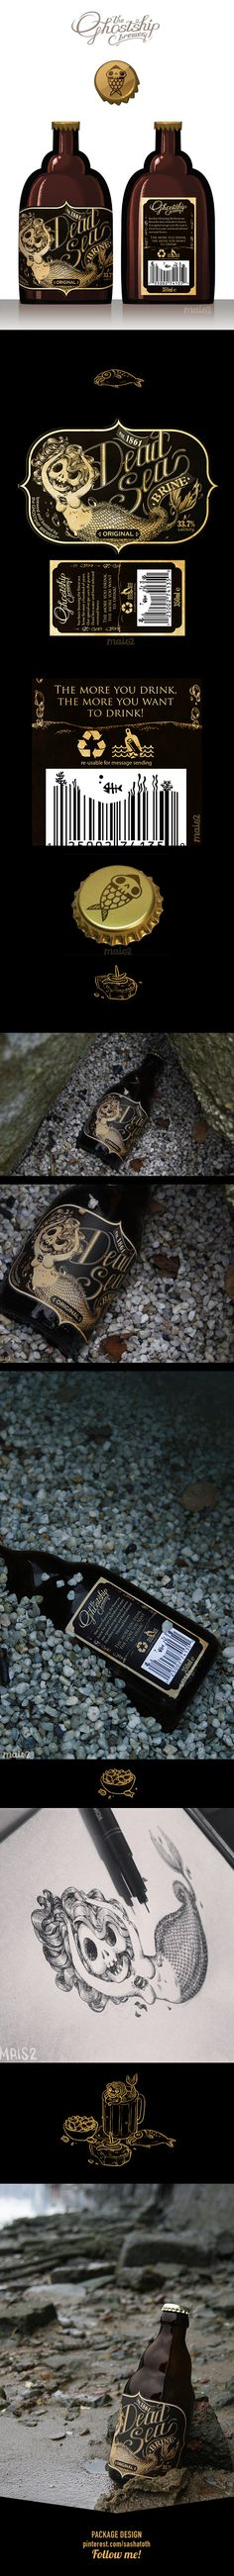 "⚓ The DEAD SEA brine ⚓ ""Personal project for an hypotetic Sea Brine drink for pirates, the 1st of a series of products by Alessandra MAiS2 Criseo, via Behance I just love this #beer #packaging PD"